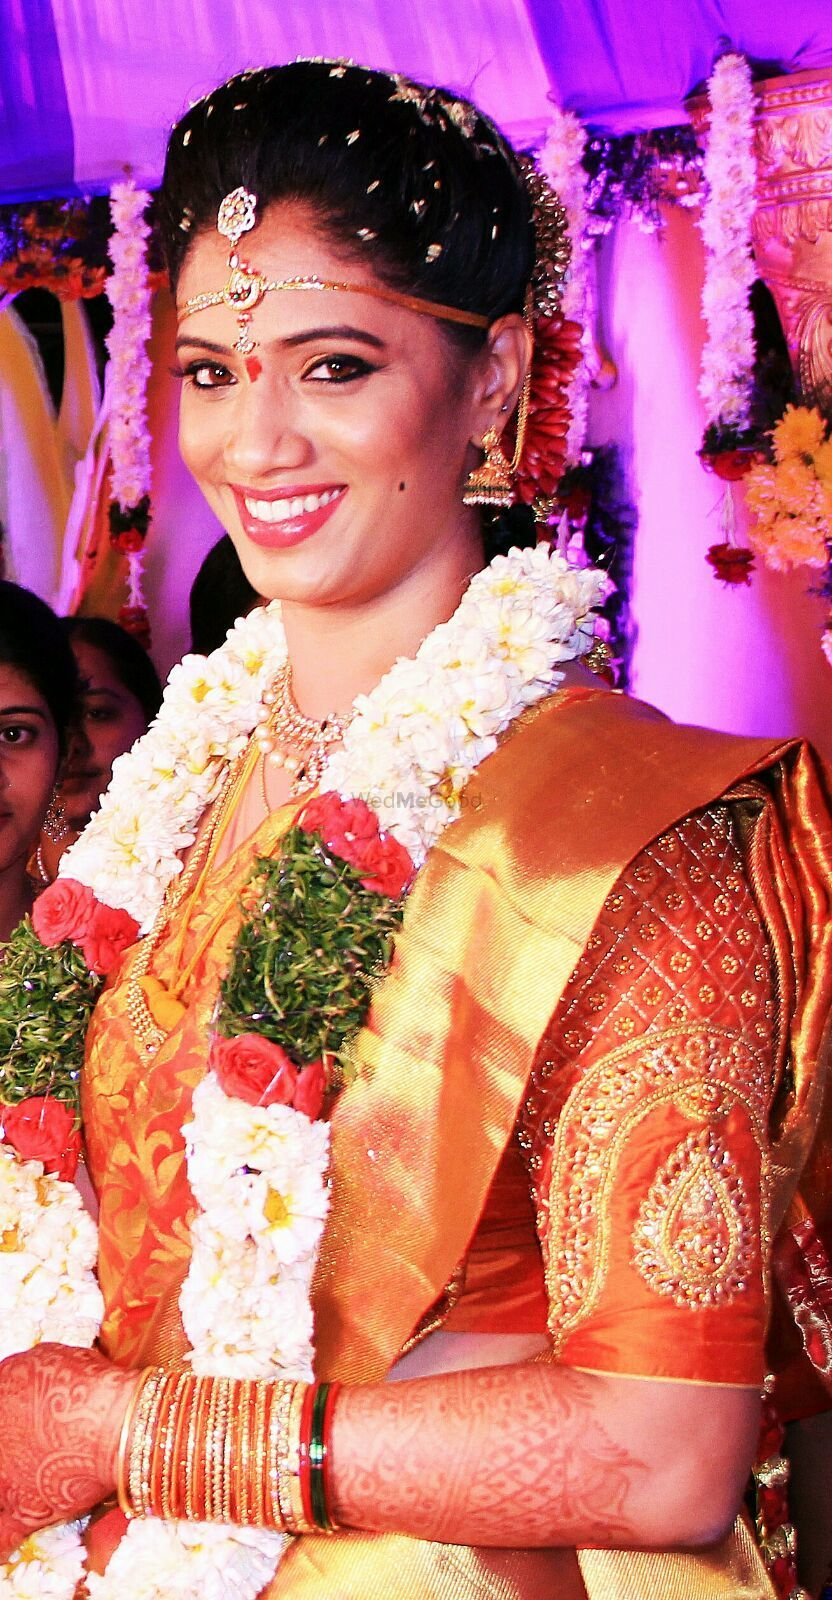 Photo From South Indian Bride's - By Make-up by Afsha Rangila